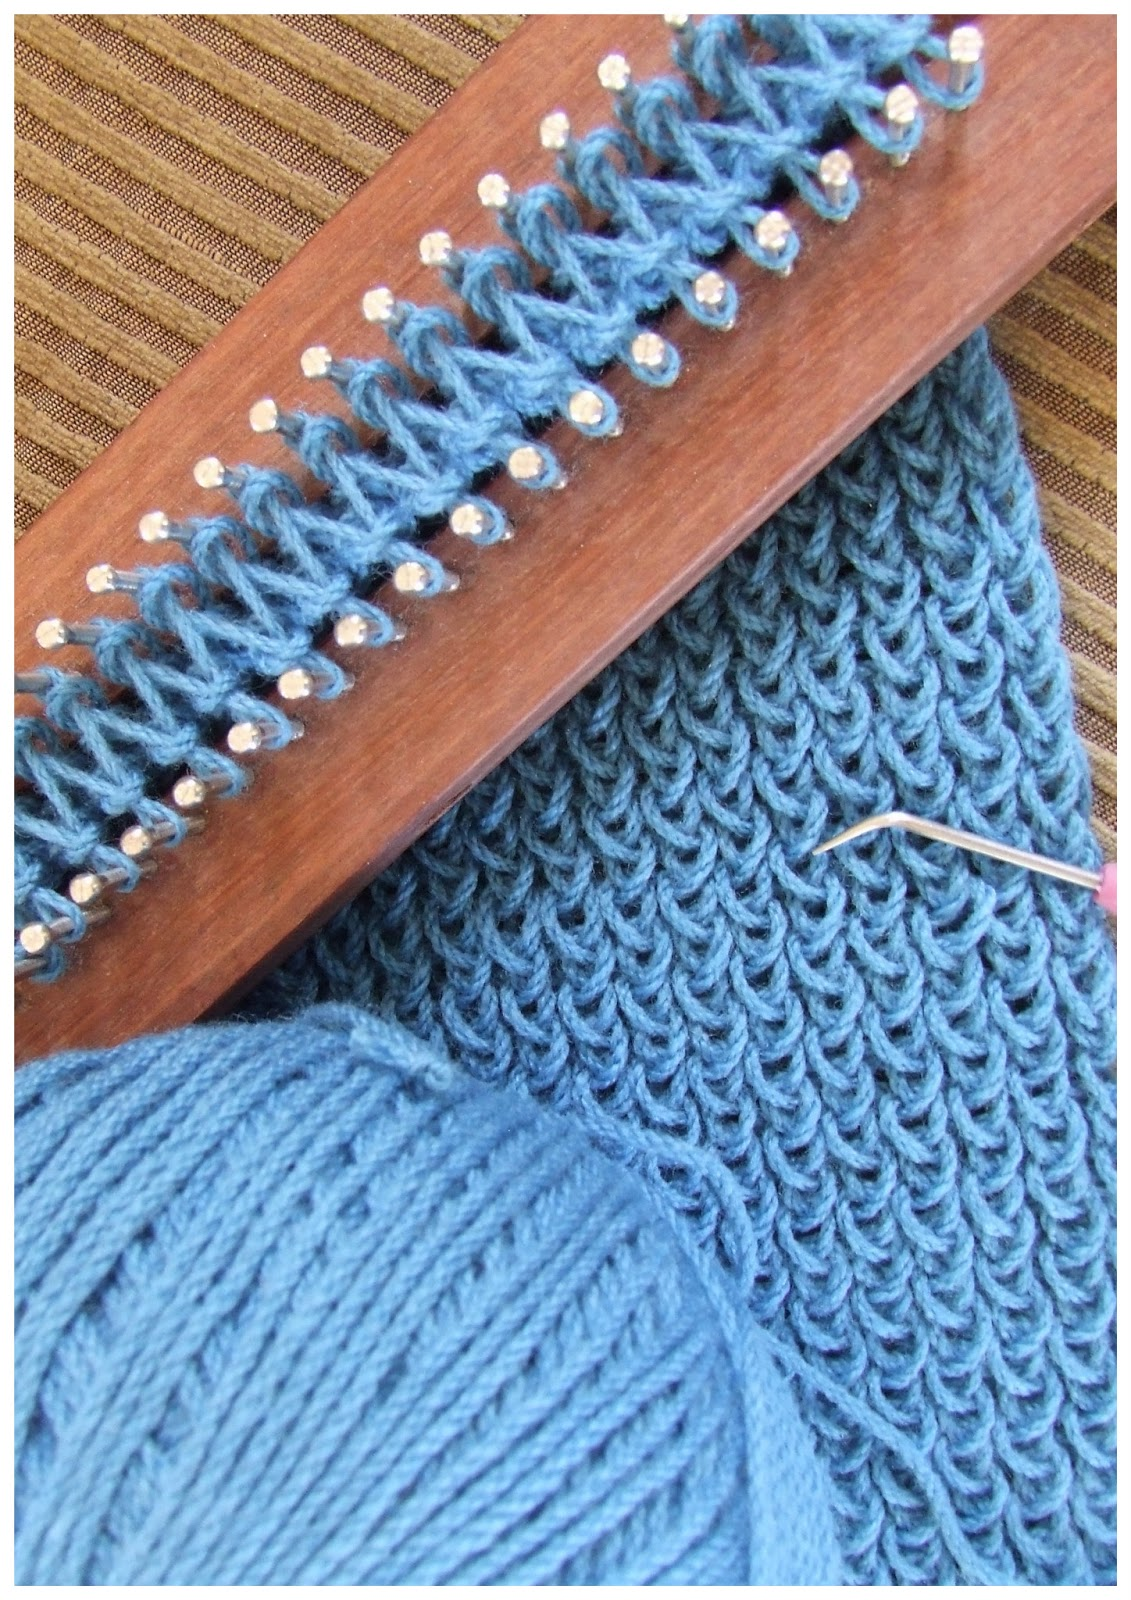 Crafty Knitting Patterns : FitzBirch Crafts: Loom Knitting